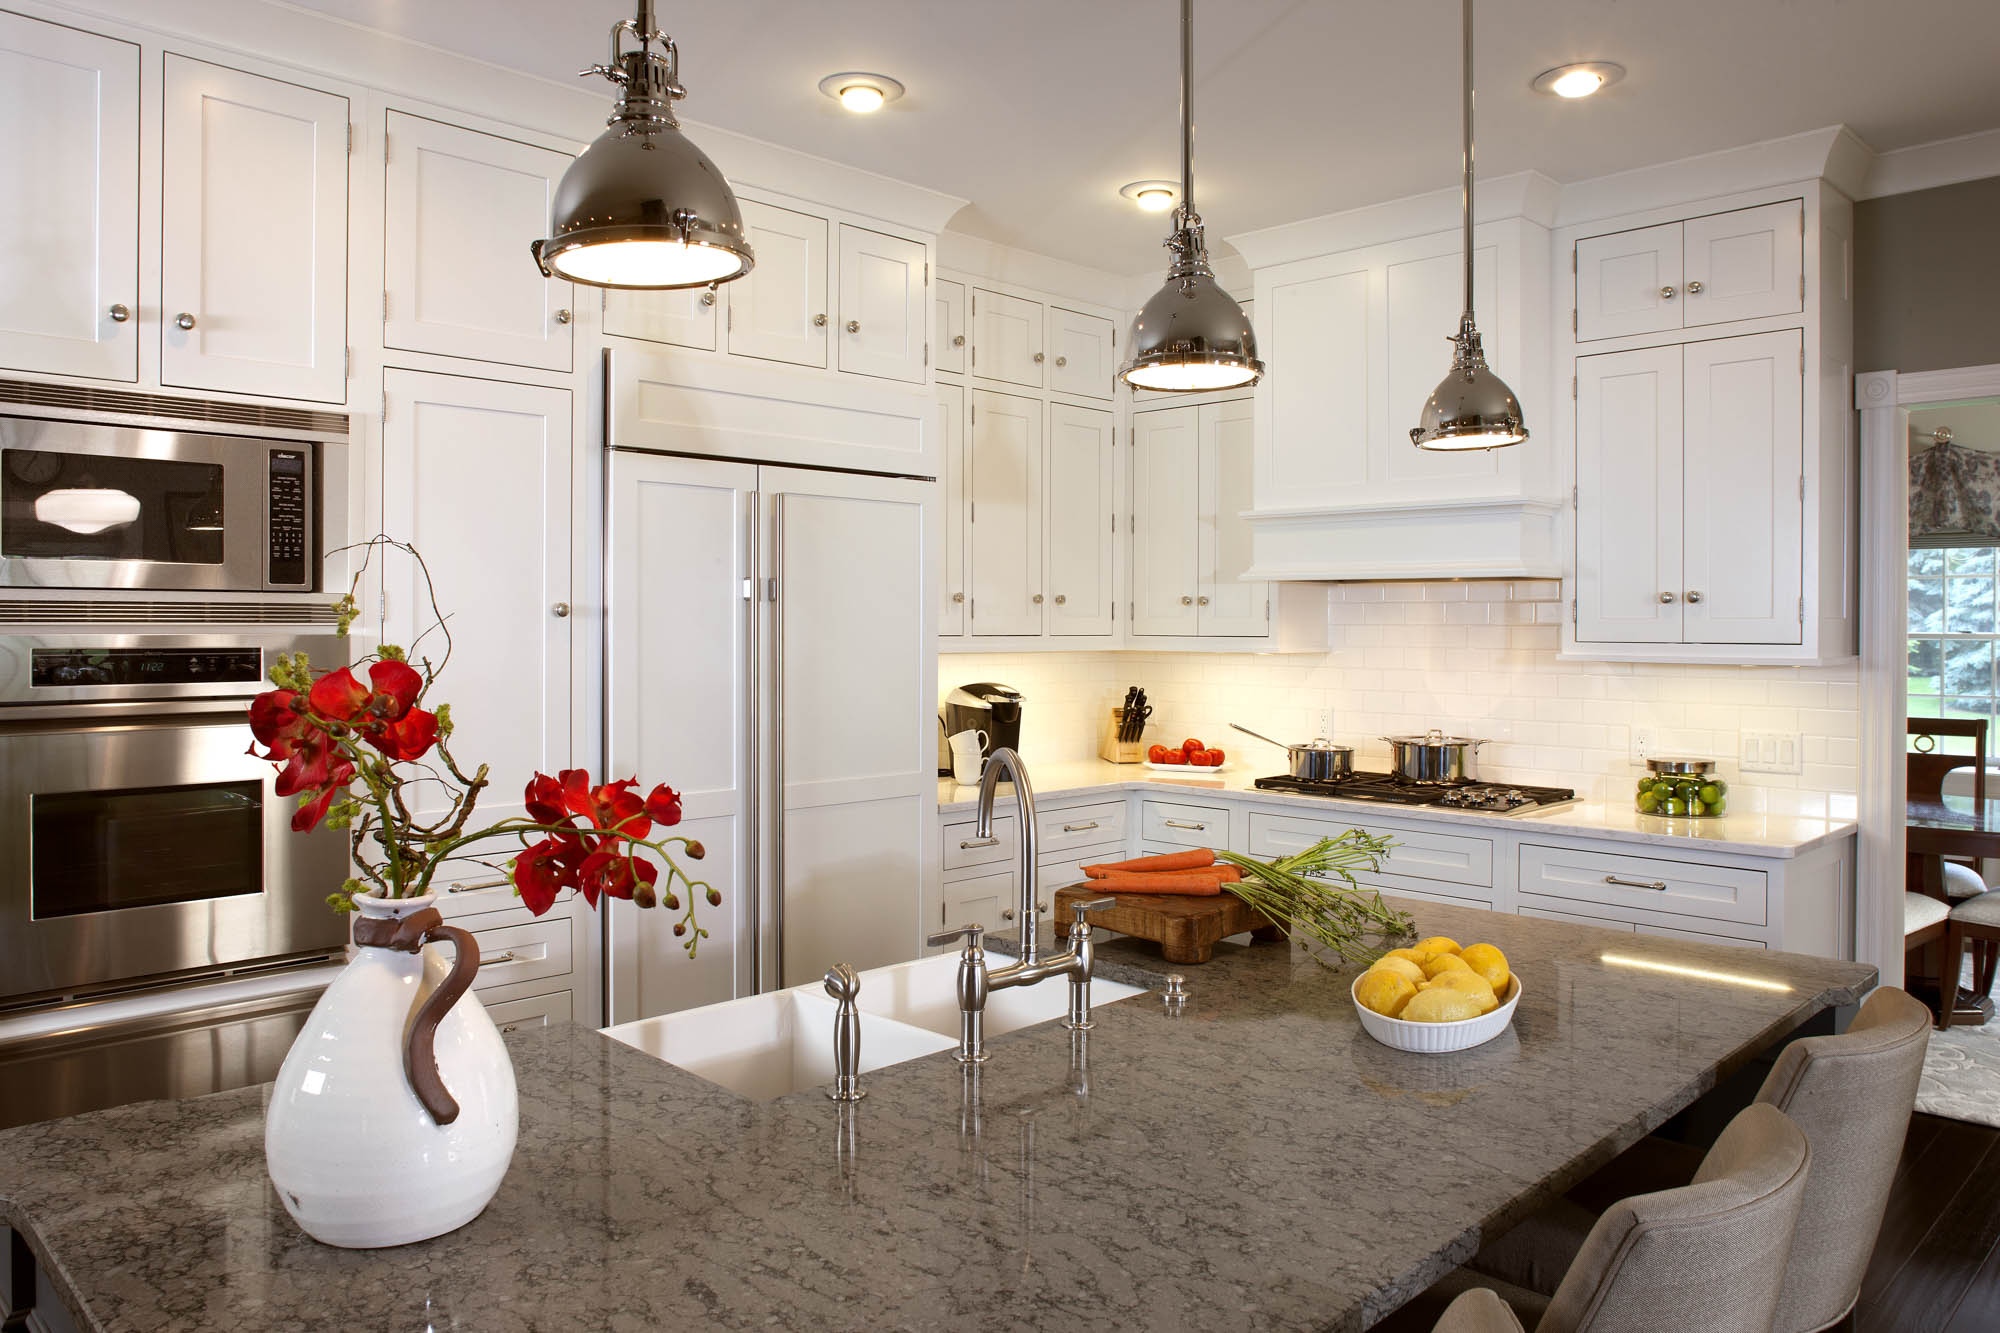 Painted kitchen cabinets in White by Showplace Cabinetry - view 2